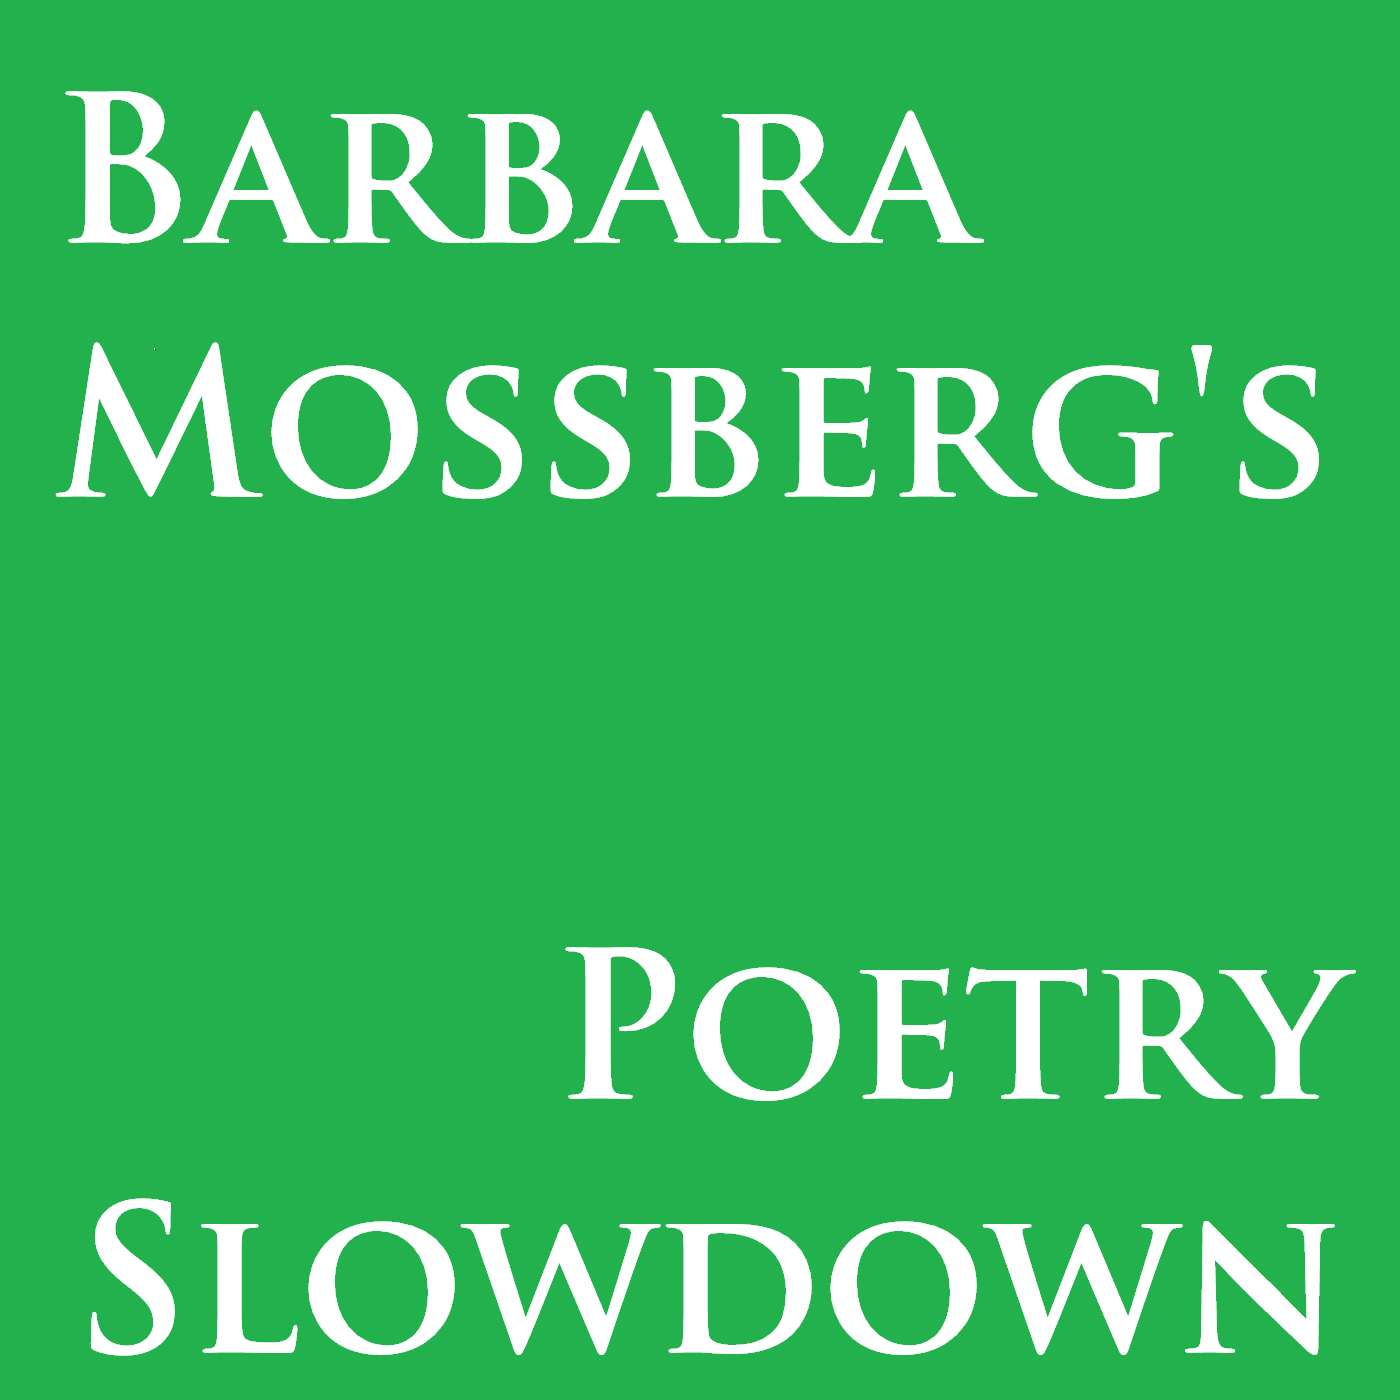 Dr. Barbara Mossberg » Poetry Slowdown